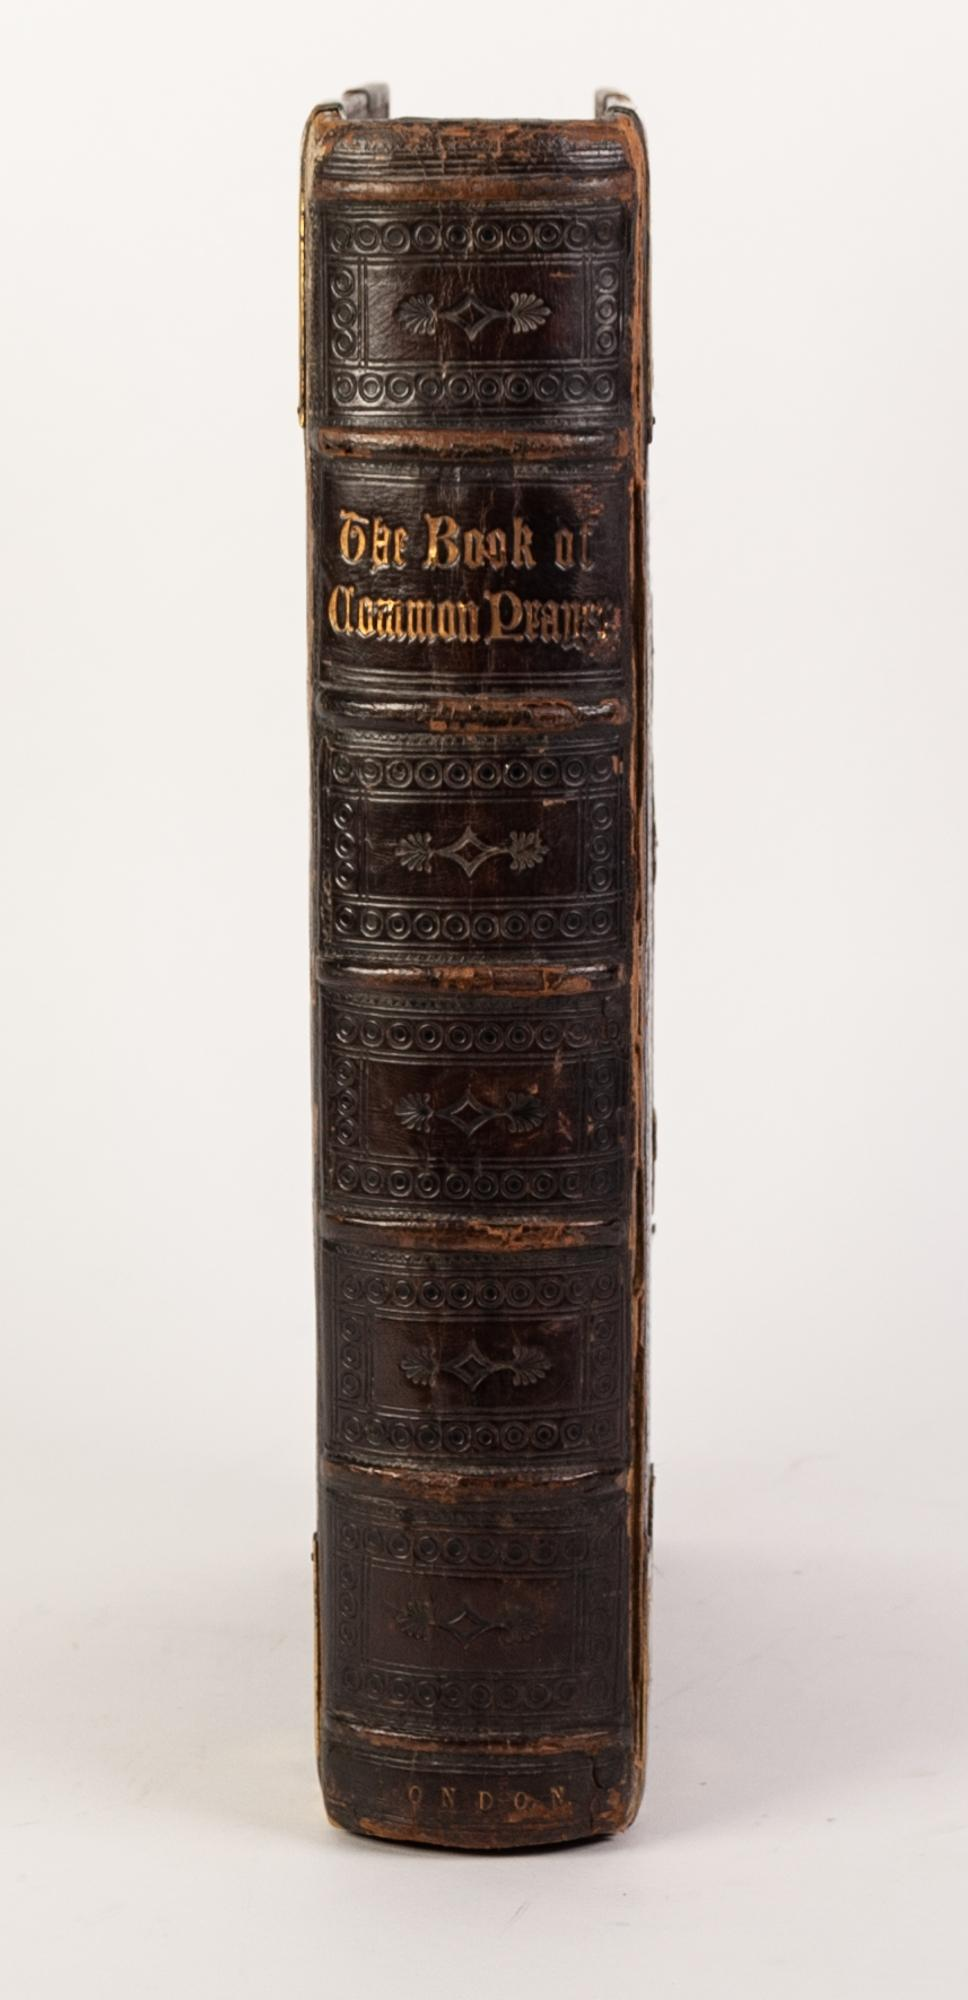 Lot 42 - BOOK OF COMMON PRAYER Wm Pickering 1844. Fine red and black printing, elaborately bound in full calf